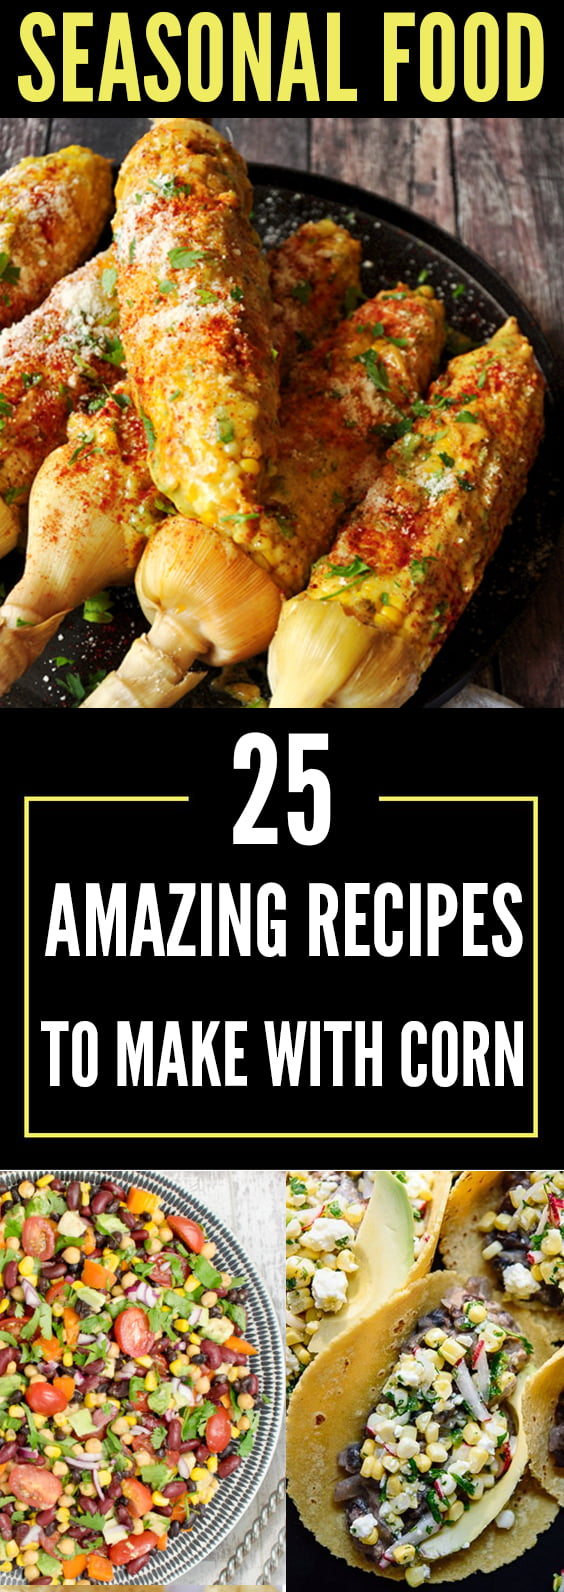 25 Amazing Recipes To Make With Corn This Autumn v900